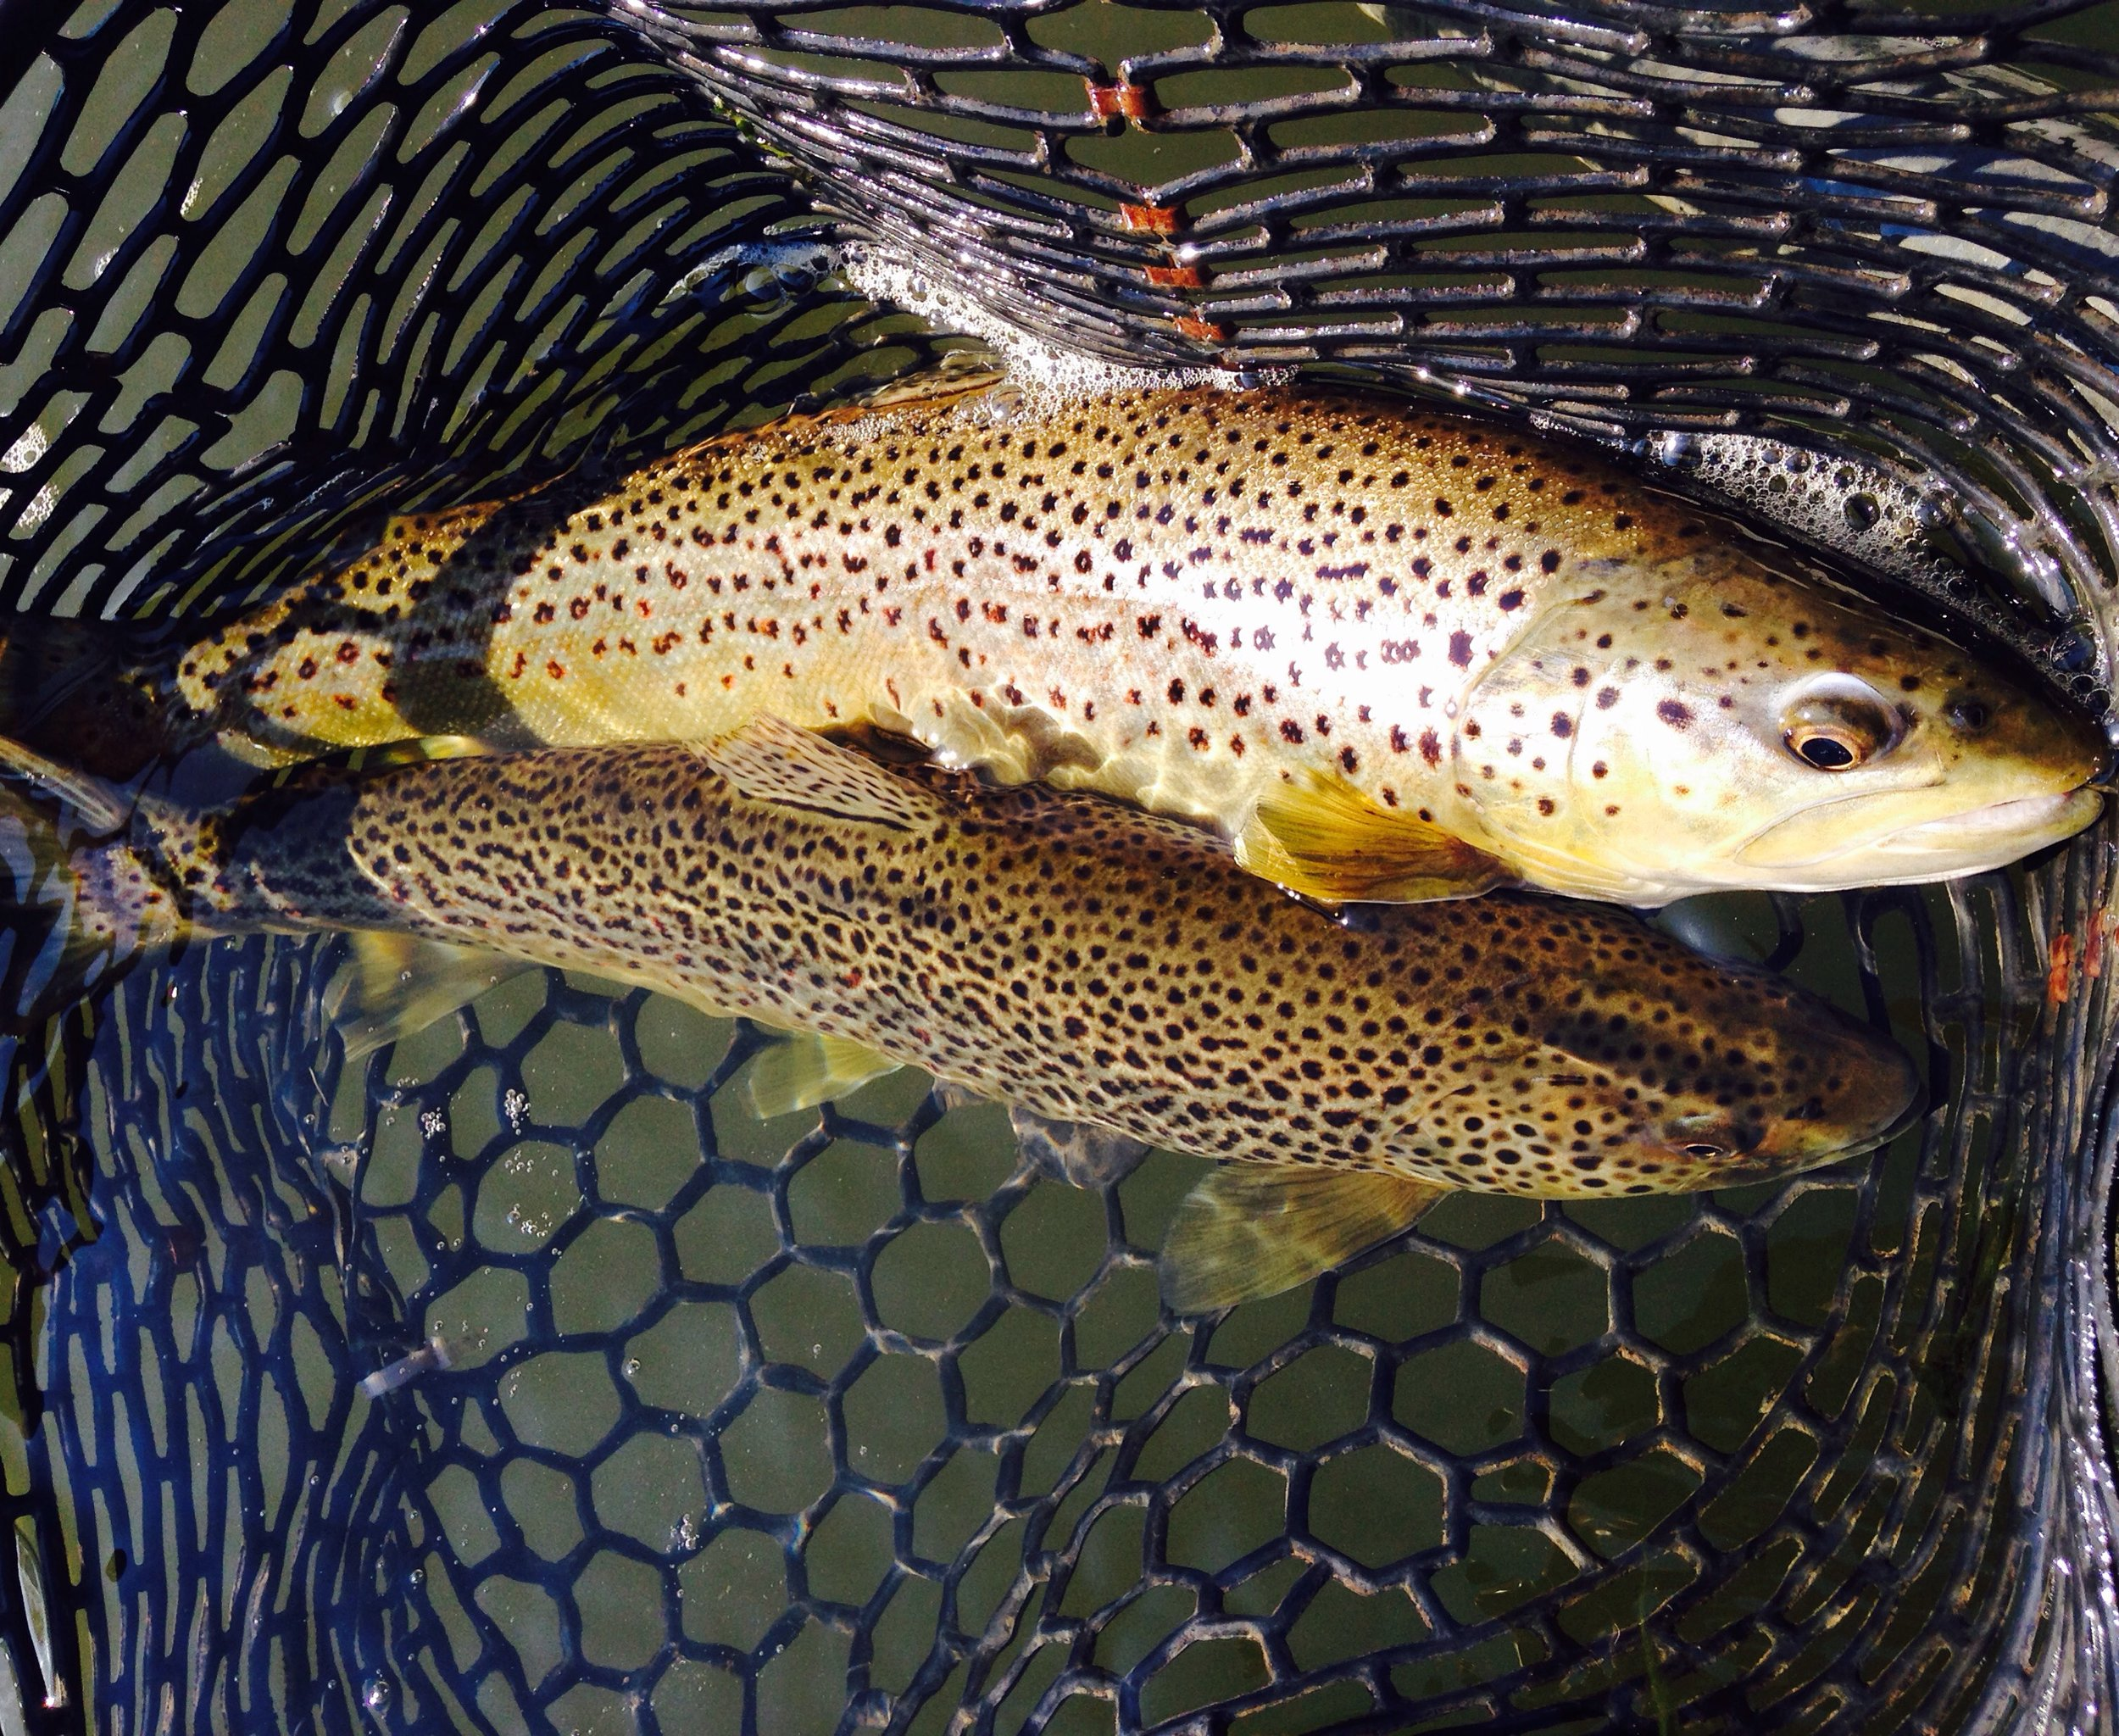 A heavy net, full of Brown trout.